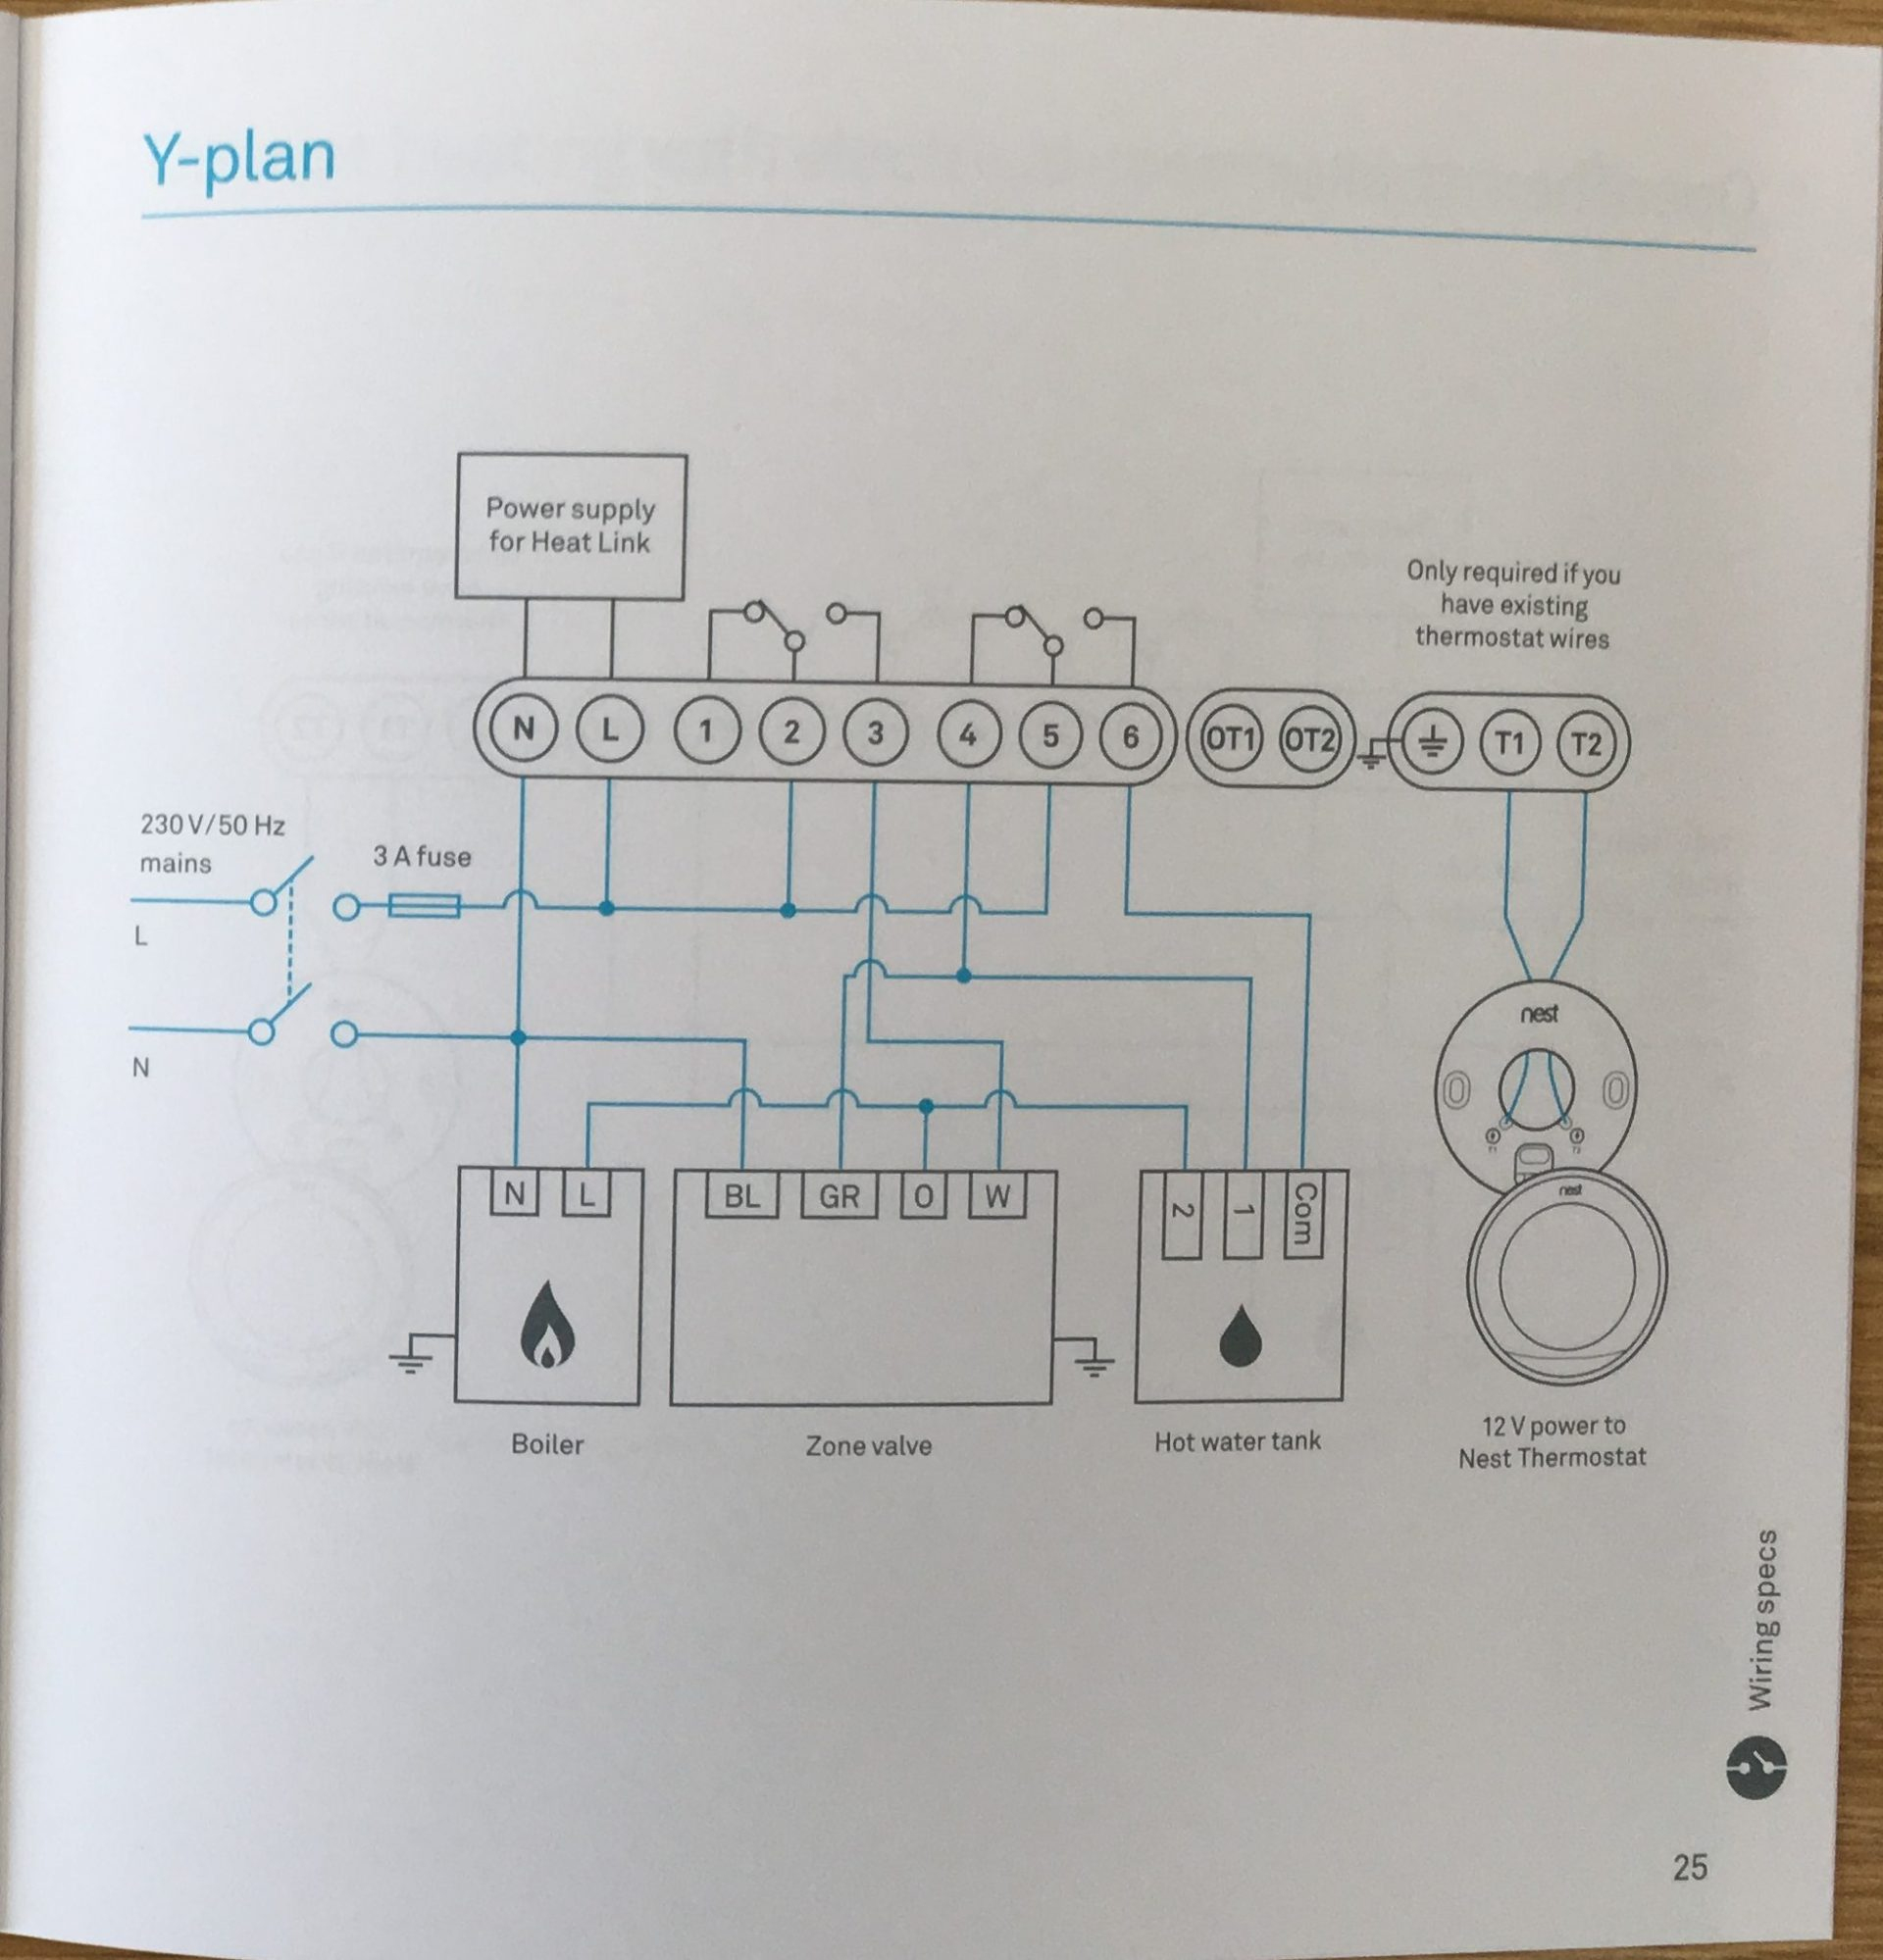 How To Install The Nest Learning Thermostat (3Rd Gen) In A Y-Plan - Wiring Diagram For Nest